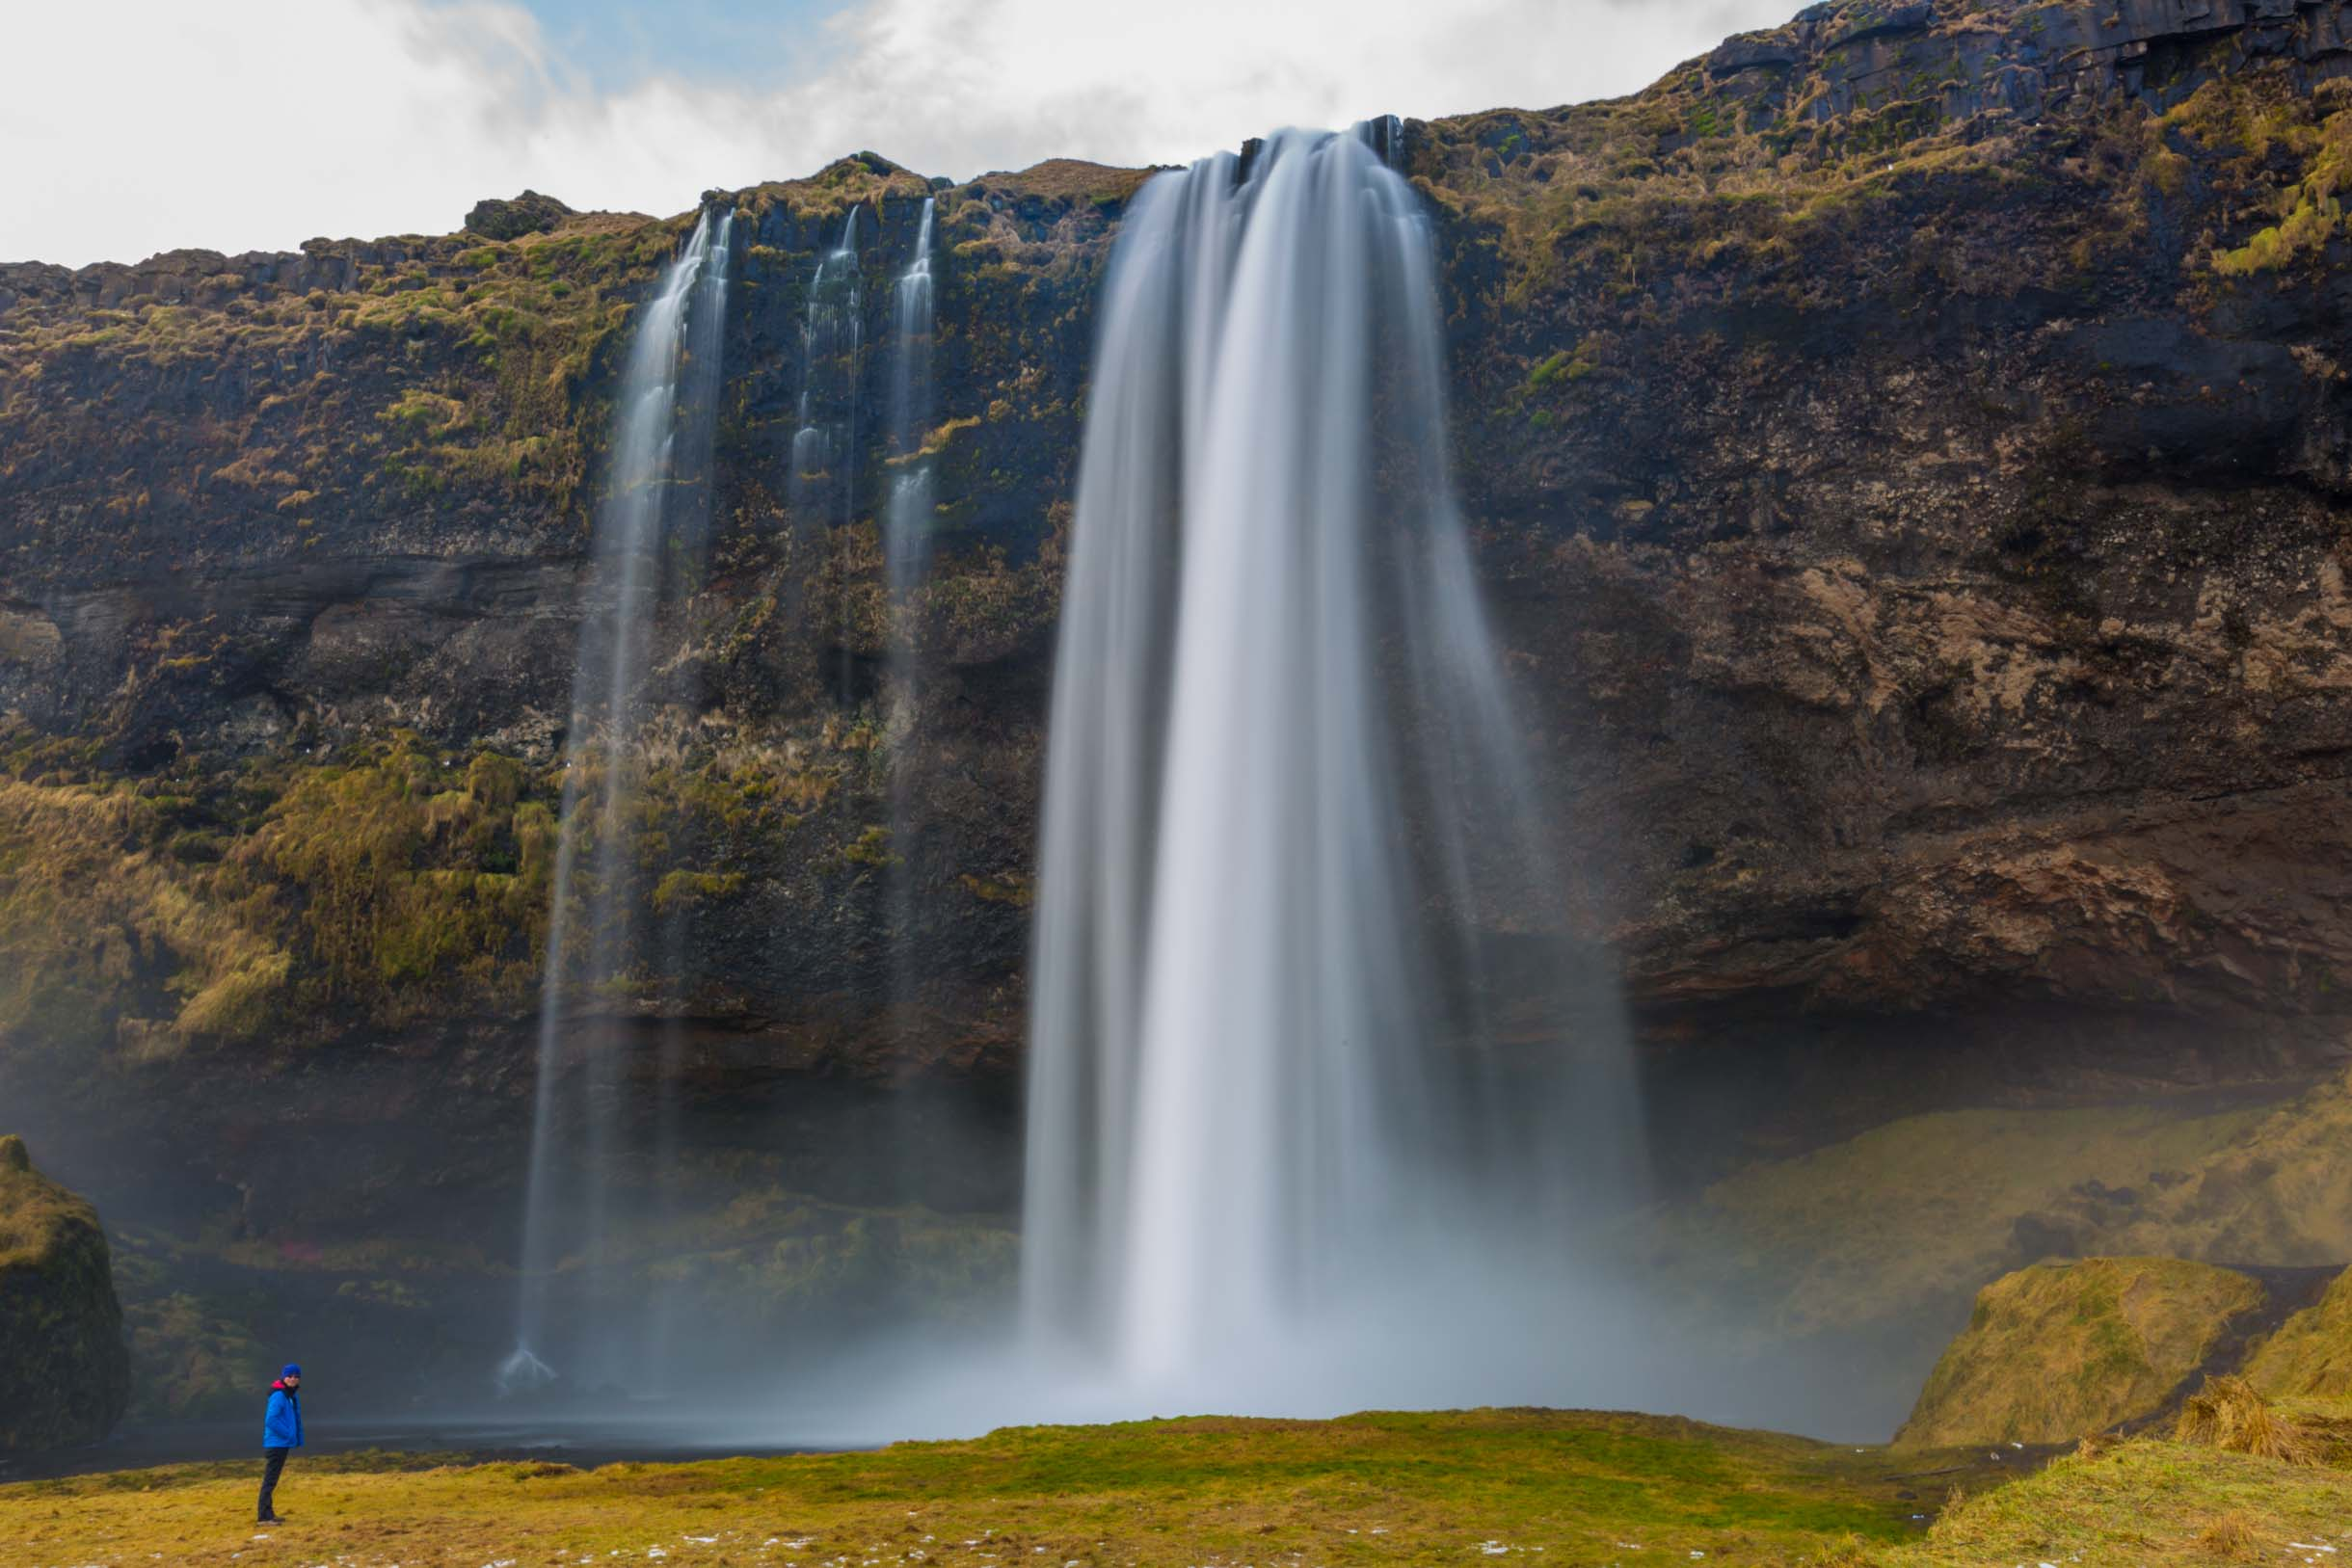 A picture from the seljalandsfoss waterfall while checking out the Southern Iceland Waterfalls